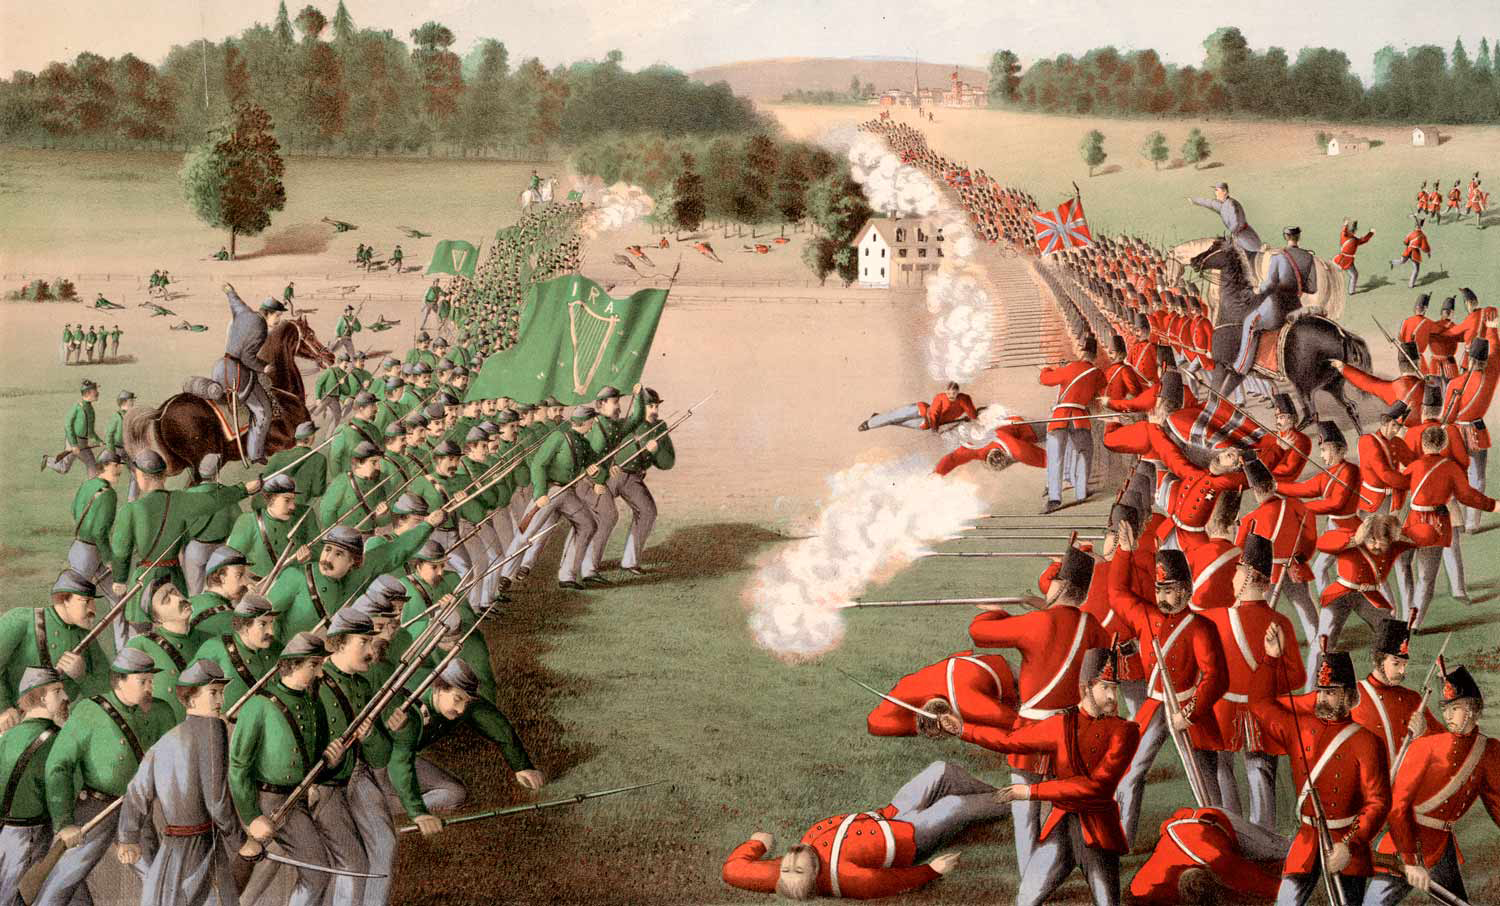 The charge of the Fenians (wearing green uniforms) under Colonel John O'Neill at the Battle of Ridgeway, near Niagara, Canada West, on June 2, 1866. In reality, the Fenians had their own green flags but wore a very mixed bag of Union and Confederate uniforms (if they still had them, or parts of them left over from the Civil War), or civilian garb, with strips of green as arm or hat bands to distinguish themselves. (library and archives canada, c-18737)